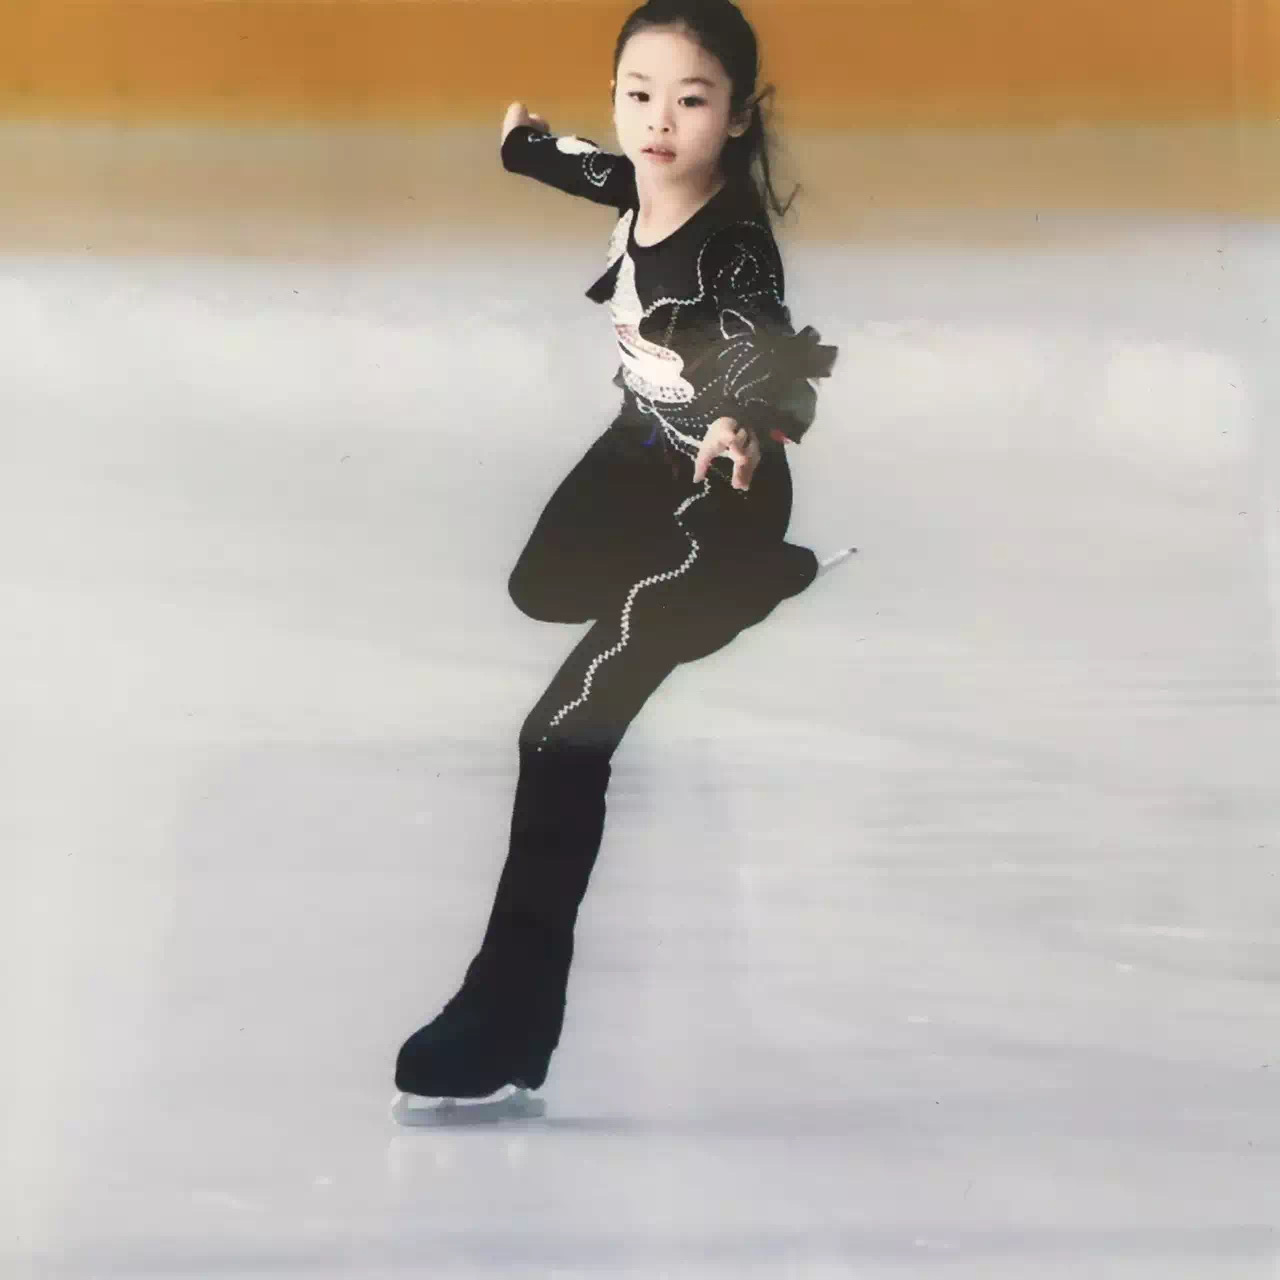 Yan noted similarities between the sport of figure skating and golf.